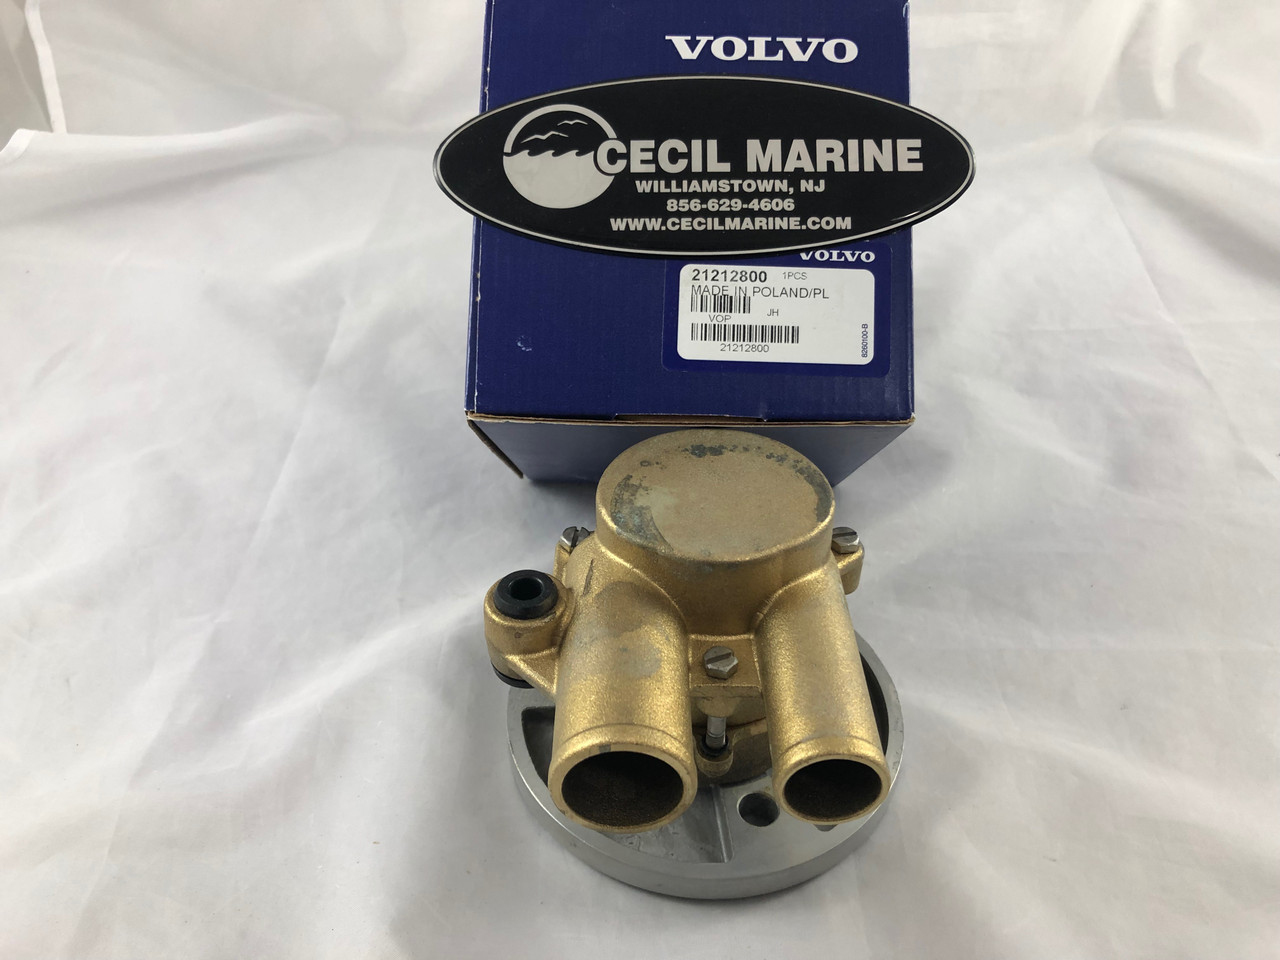 hight resolution of  329 95 genuine volvo sea water pump 21212800 in stock ready to ship